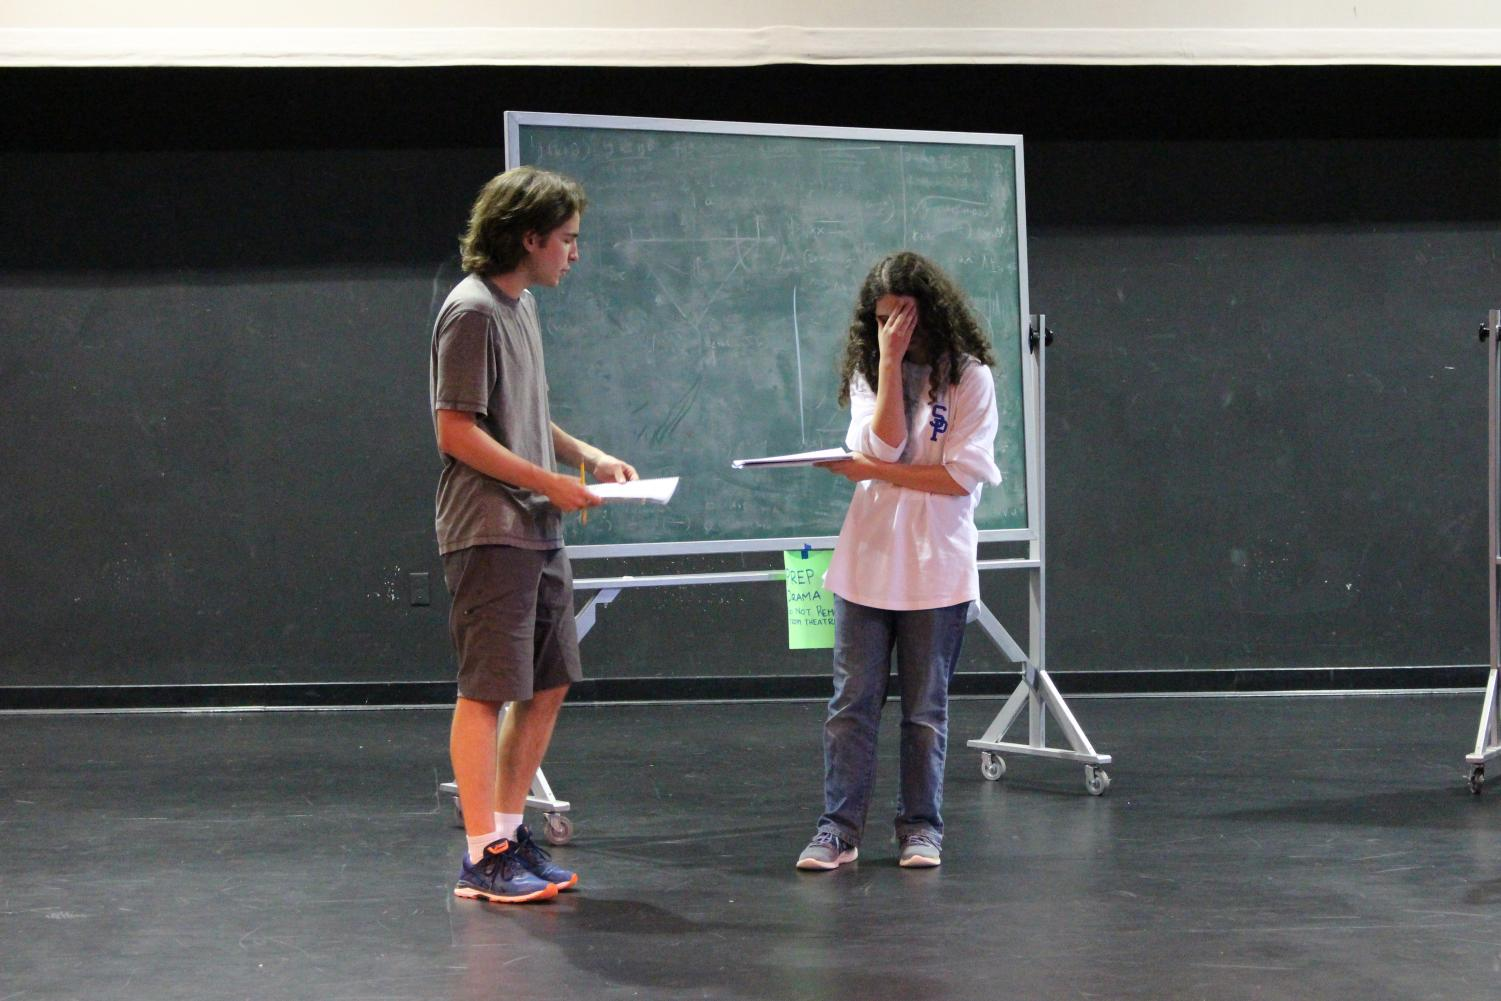 Cast members rehearse for The Curious Incident of the Dog in the Night. The show opens on October 25,